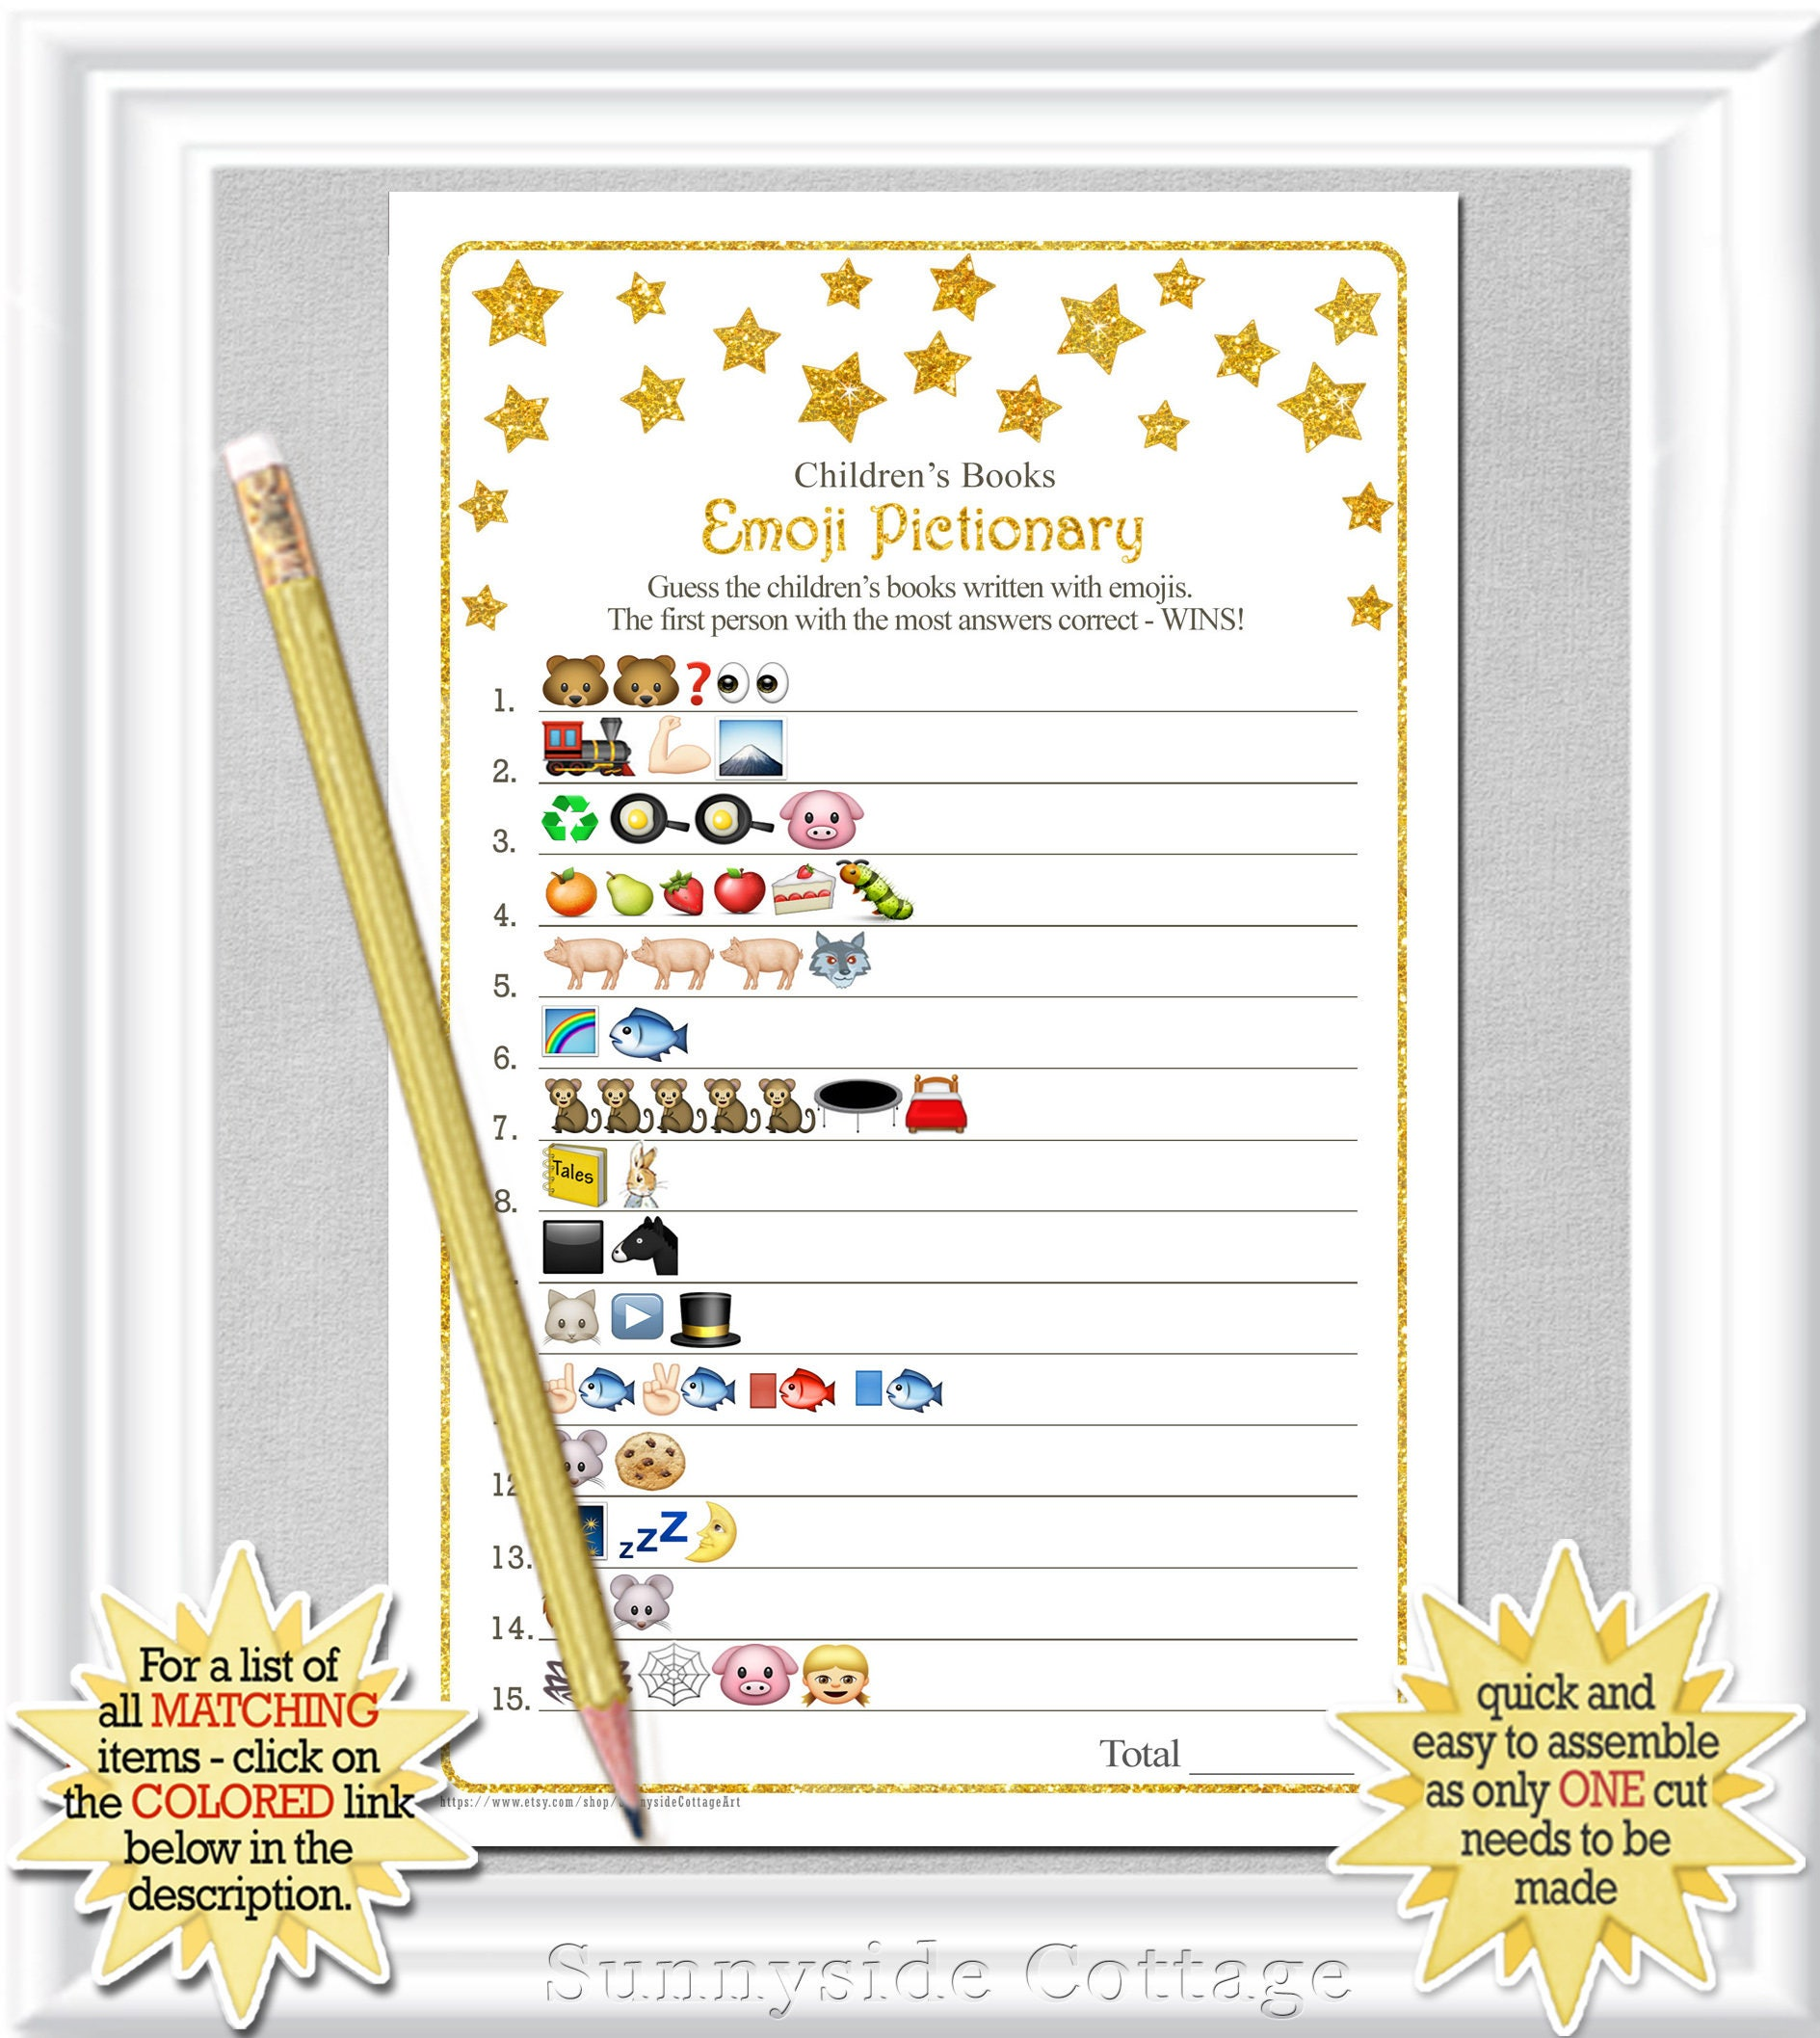 Childrens Books EMOJI Pictionary Game With Whimsical Gold